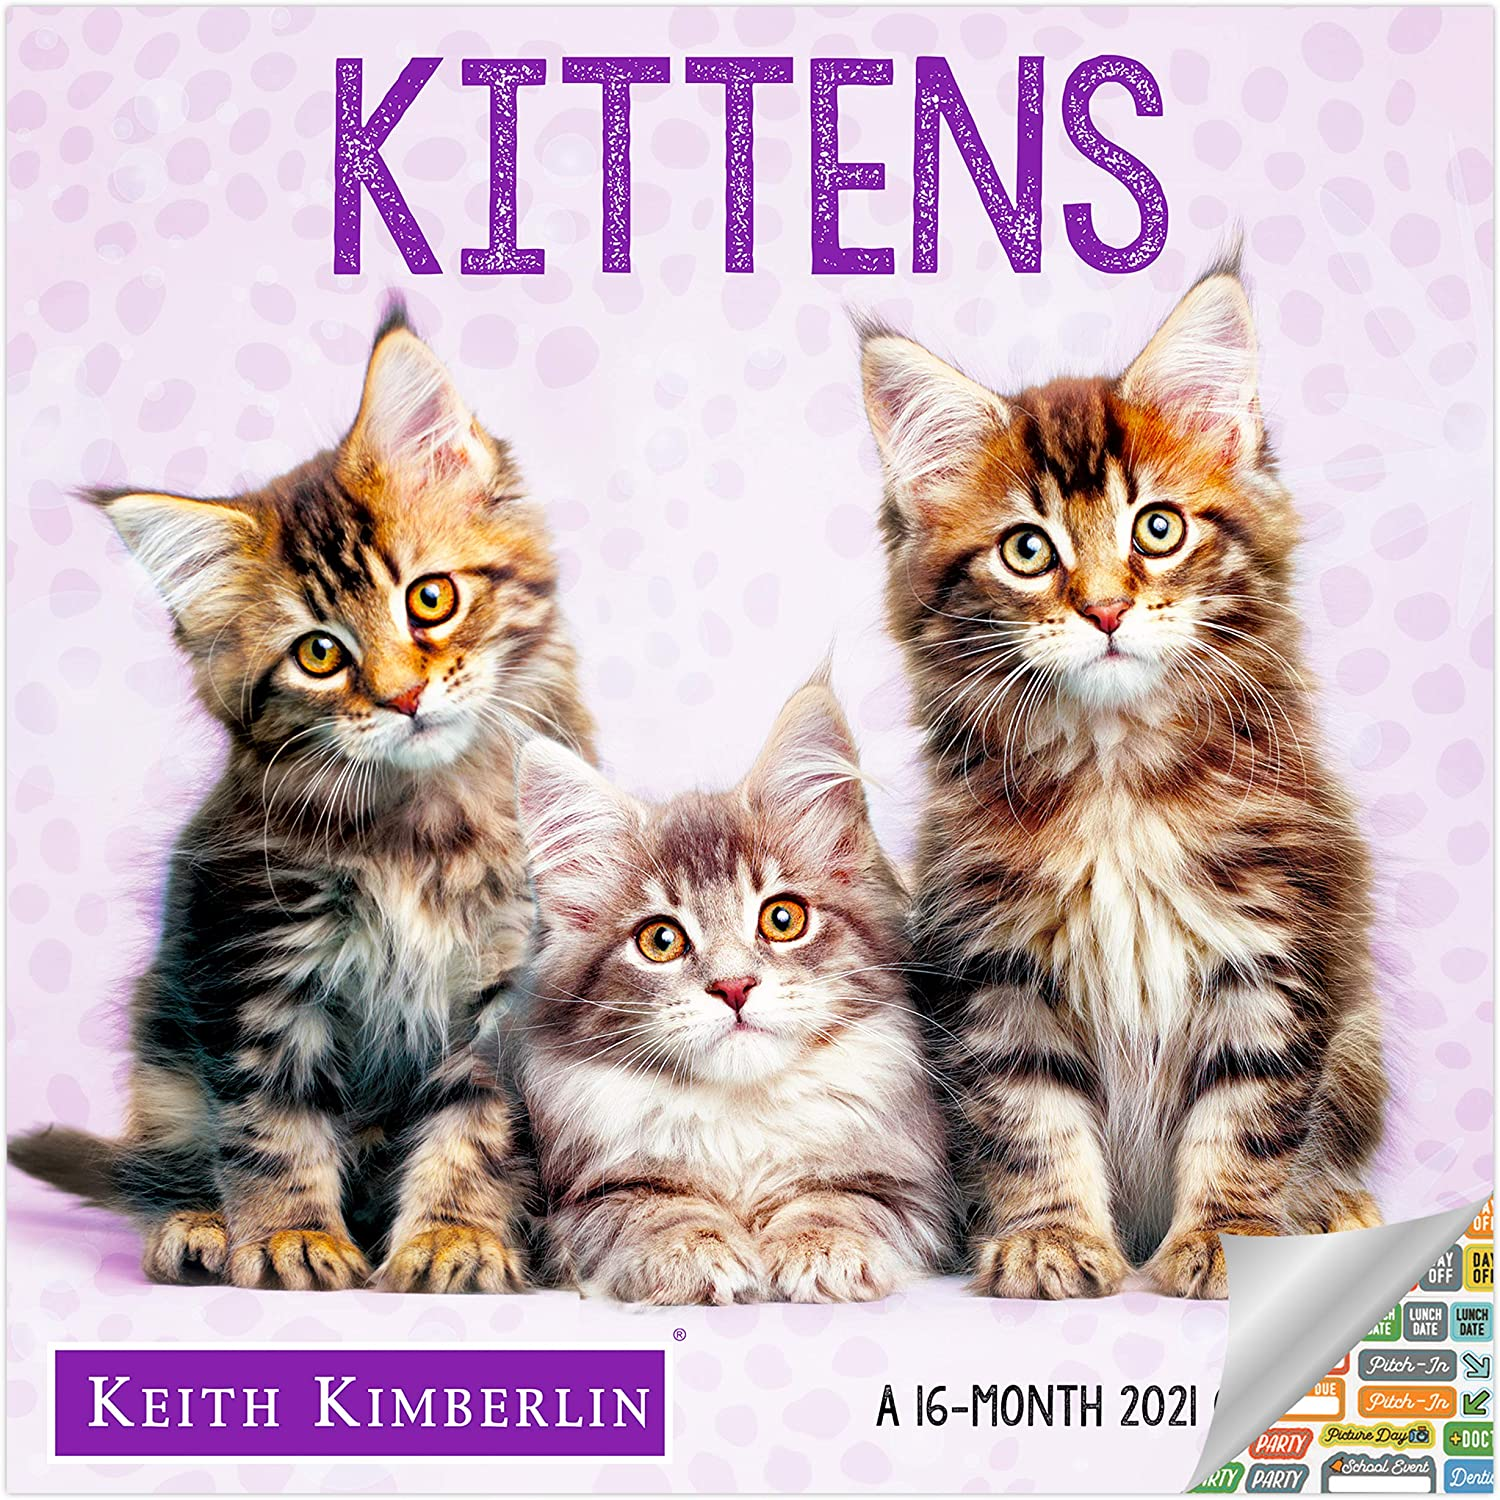 Keith Kimberlin Kittens Calendar 2021 Bundle - Deluxe 2021 Kittens Wall Calendar with Over 100 Calendar Stickers (Kitty Gifts, Office Supplies)